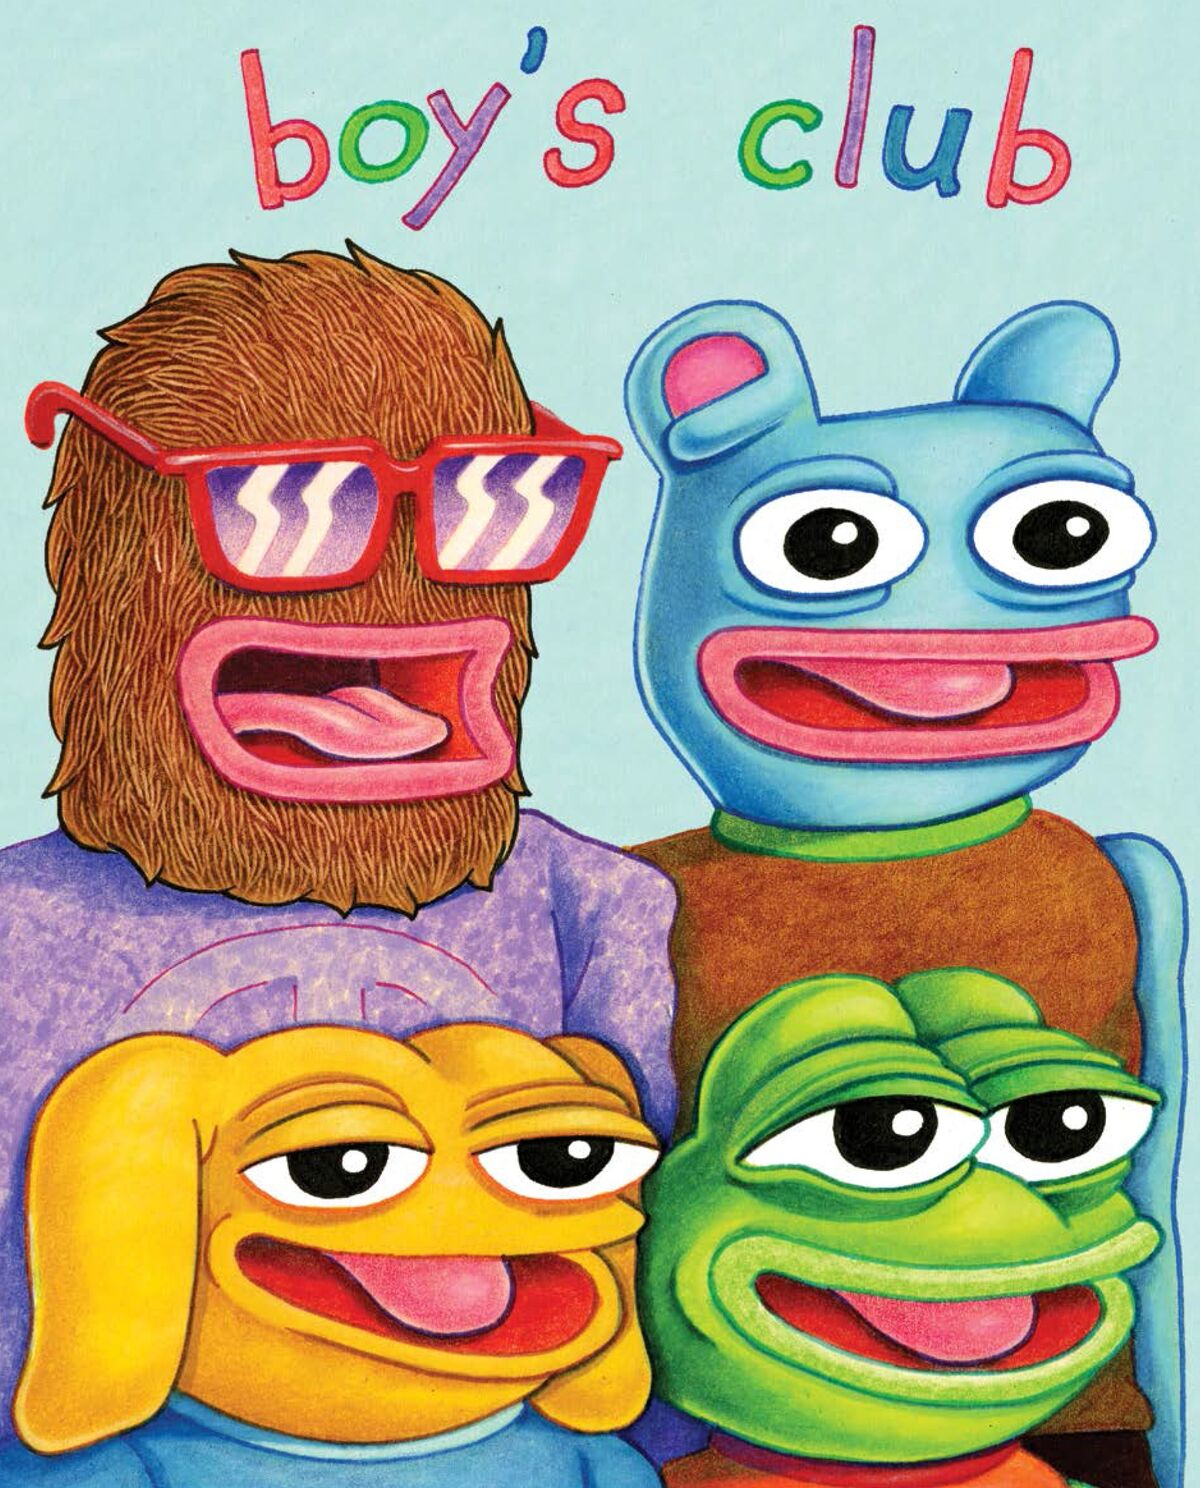 Matt Furie, Boy's Club, 2005. Image courtesy of Fantagraphics Books, Inc.